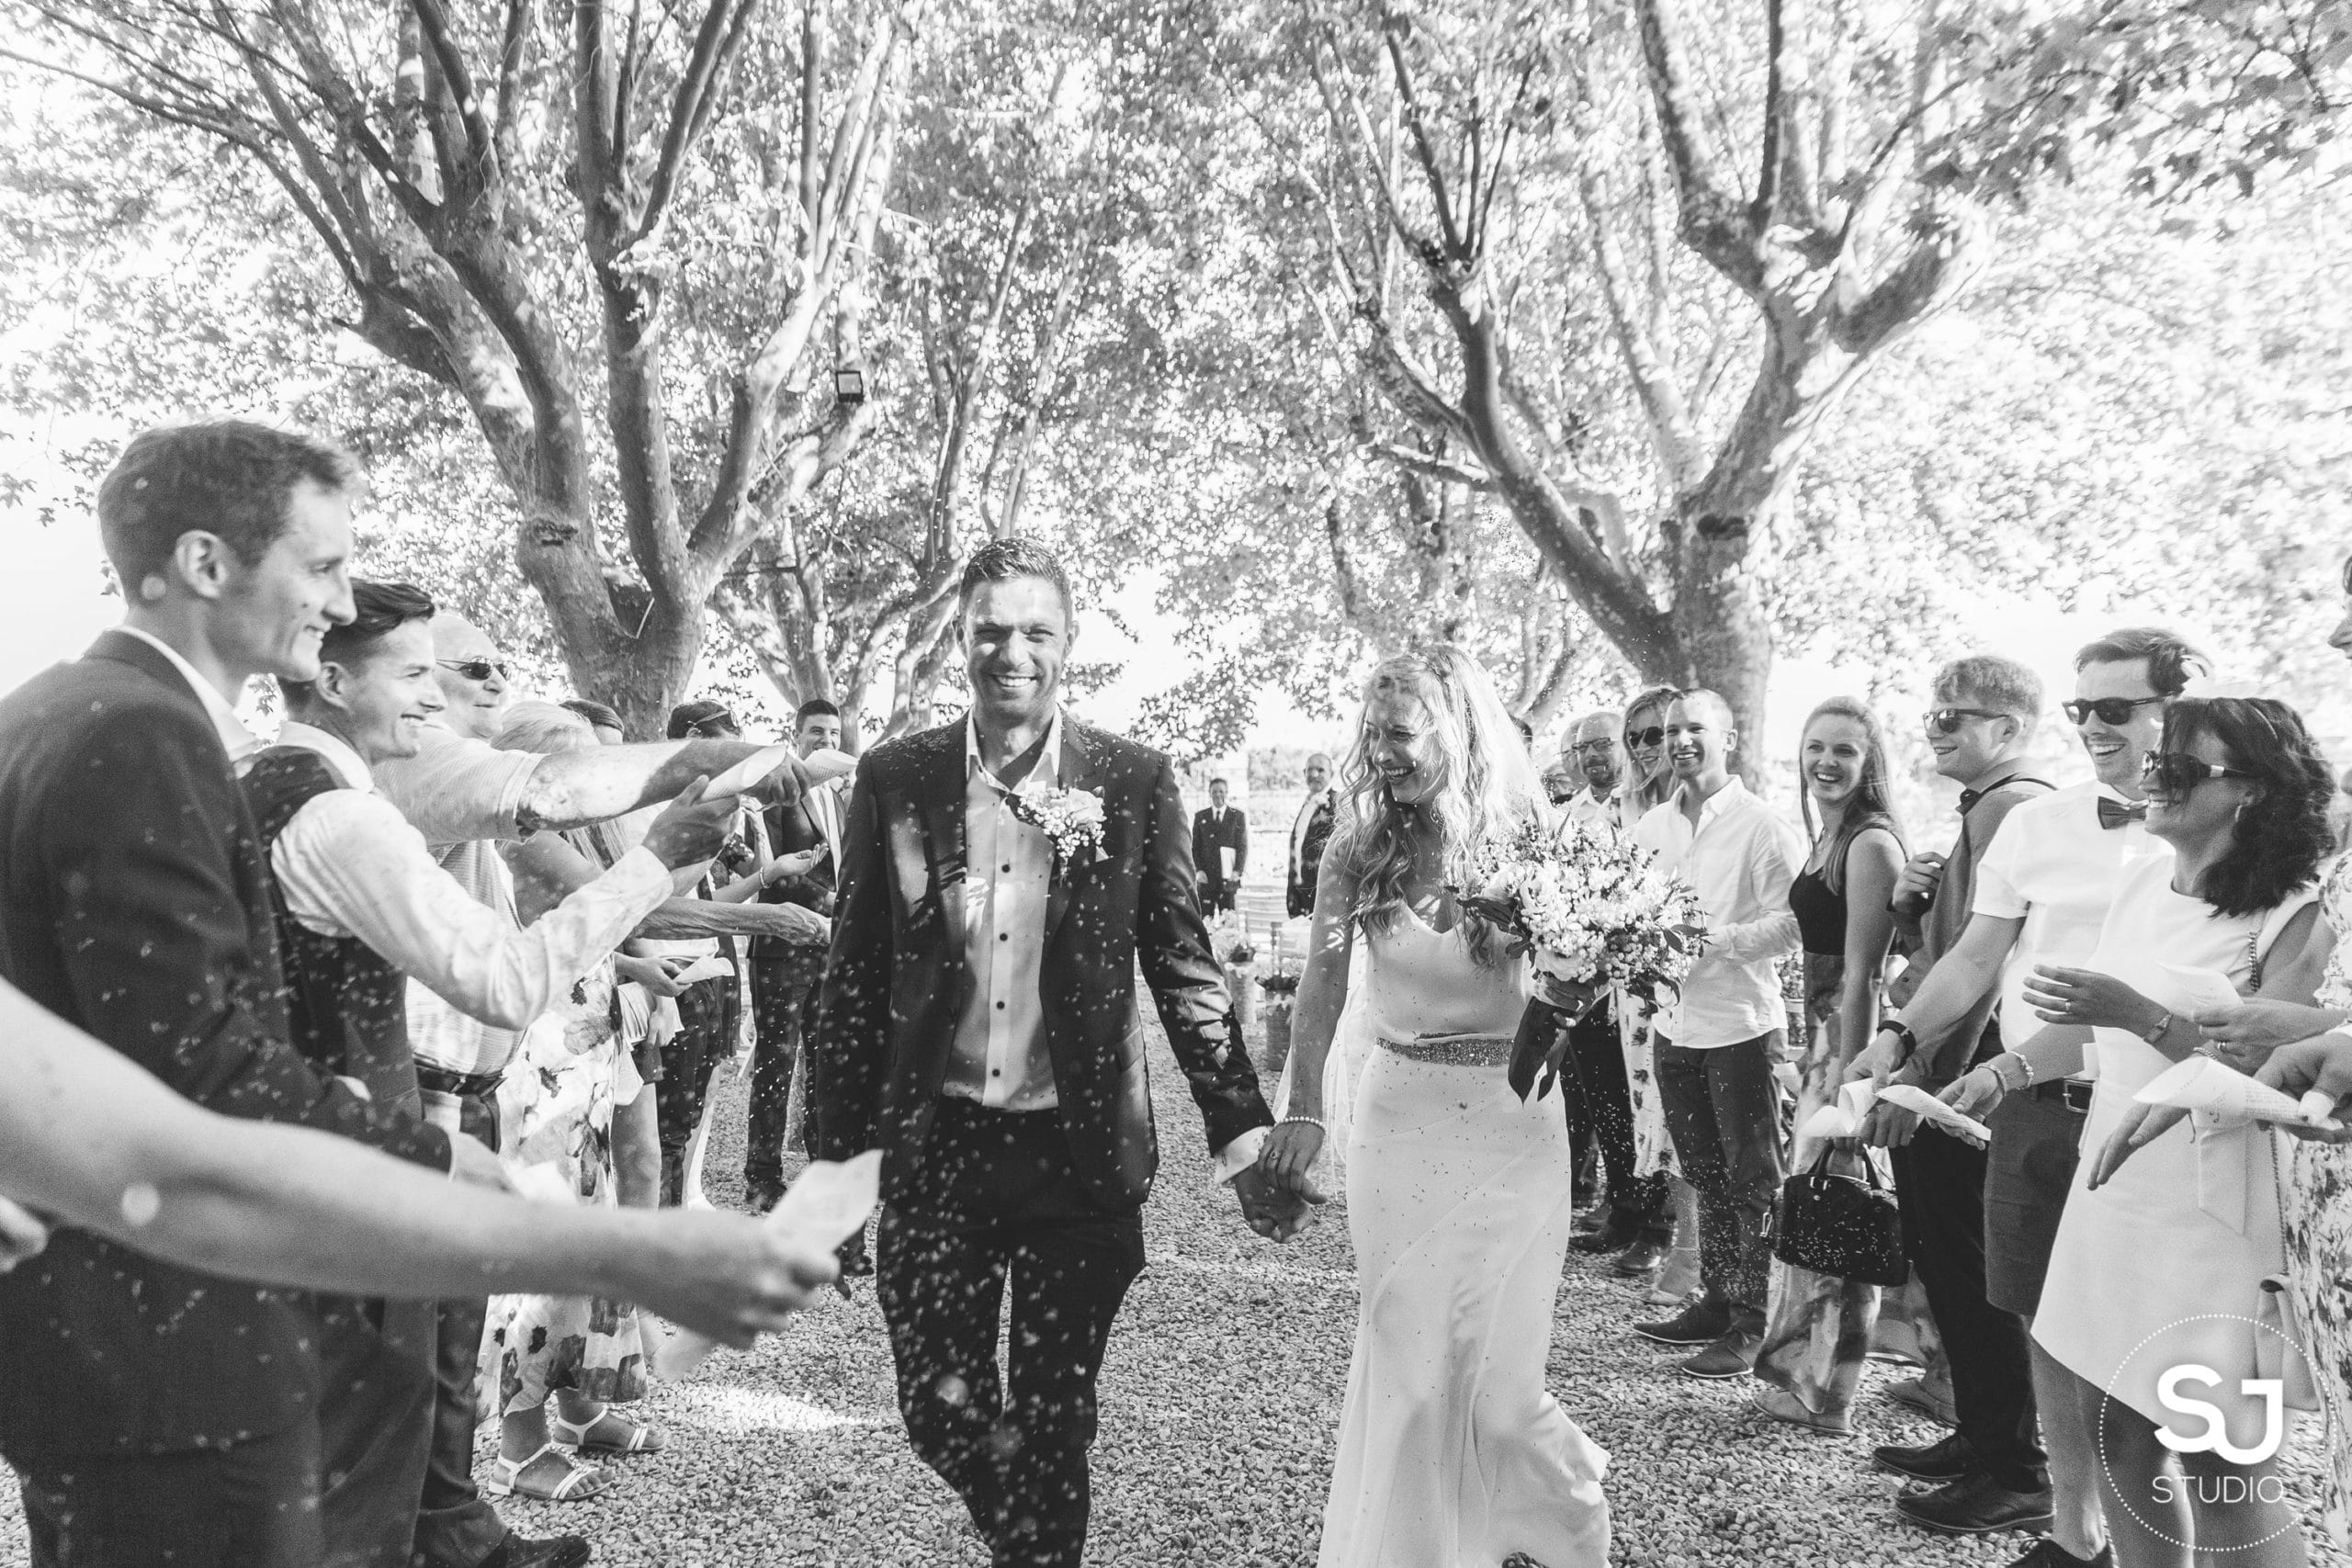 wedding-provence-pmariage-couple-bride-groom-mries-sourire-parc-platanes-south-france-13